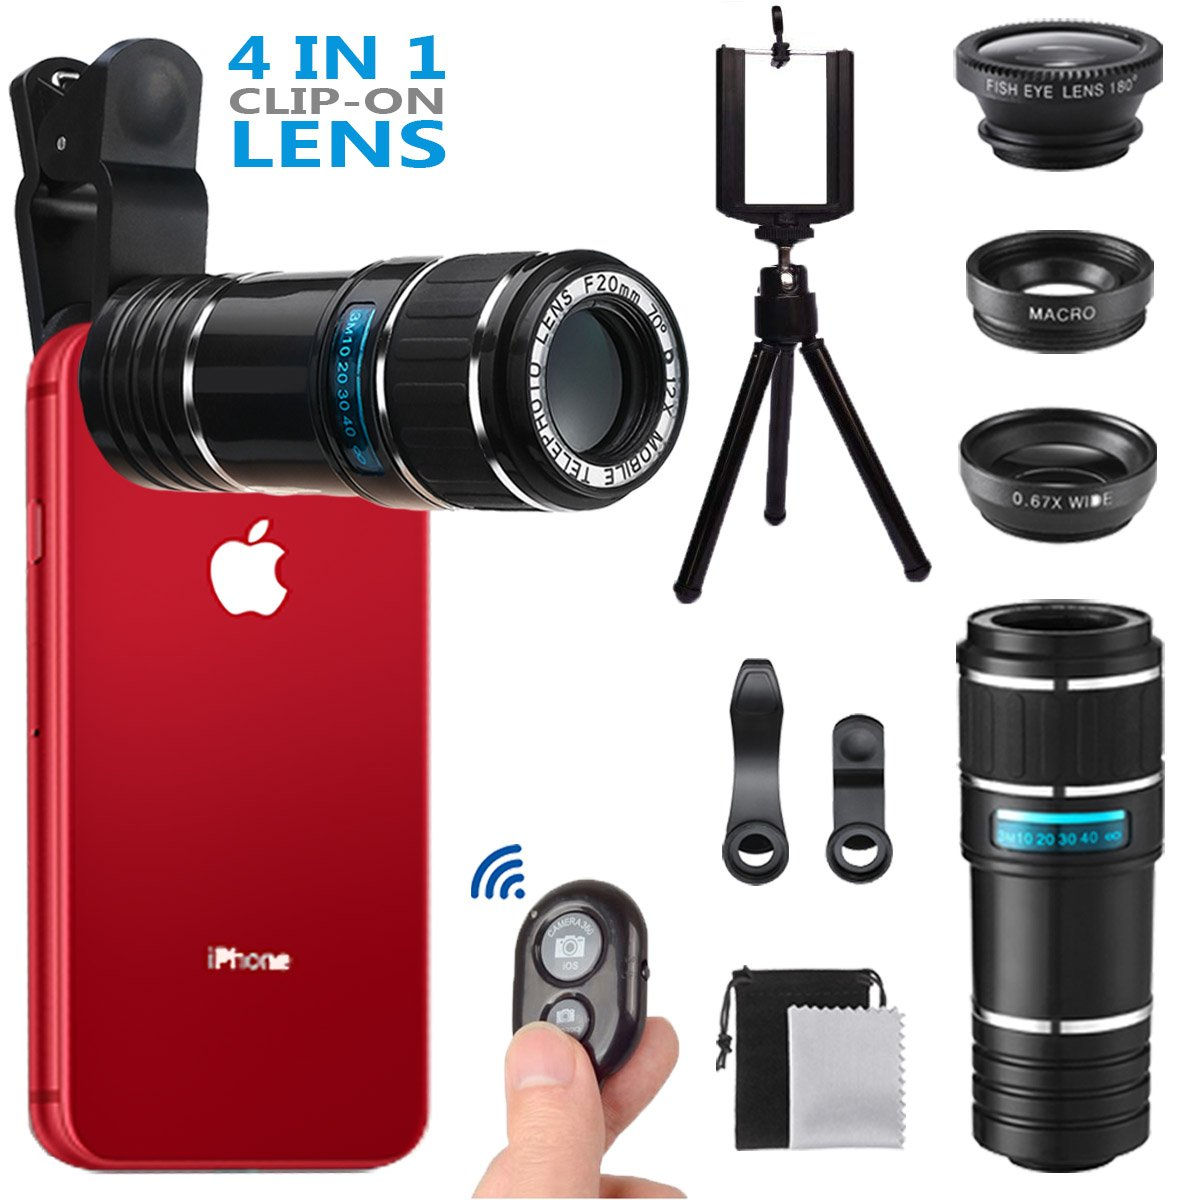 Phone Camera Lens, MSDADA Telephoto Lens Kit, 12X Optical Telescope, Fisheye, Wide Angle and Macro Lens, Retractable Tripod with Bluetooth Shutter for IPhone, Samsung, Most of Smartphones,Tablets by MSDADA (Image #1)